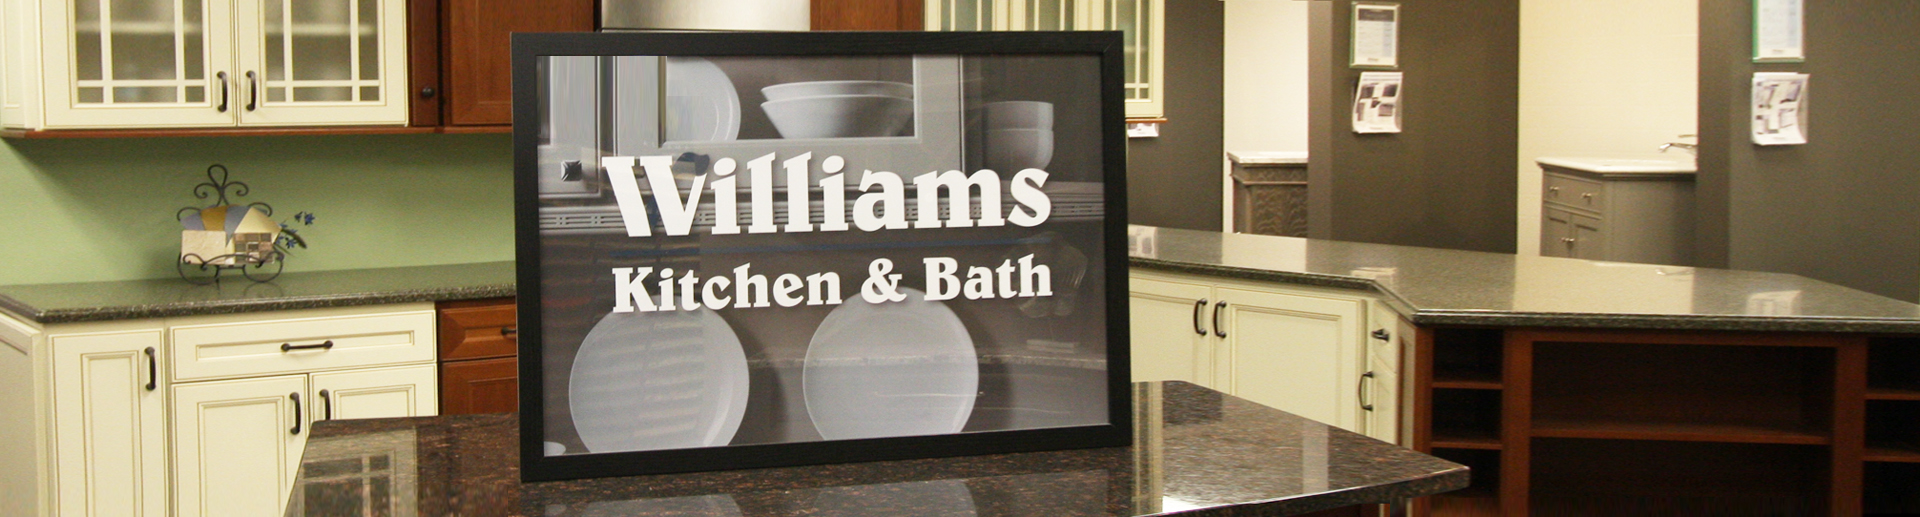 Welcome to williams kitchen bath